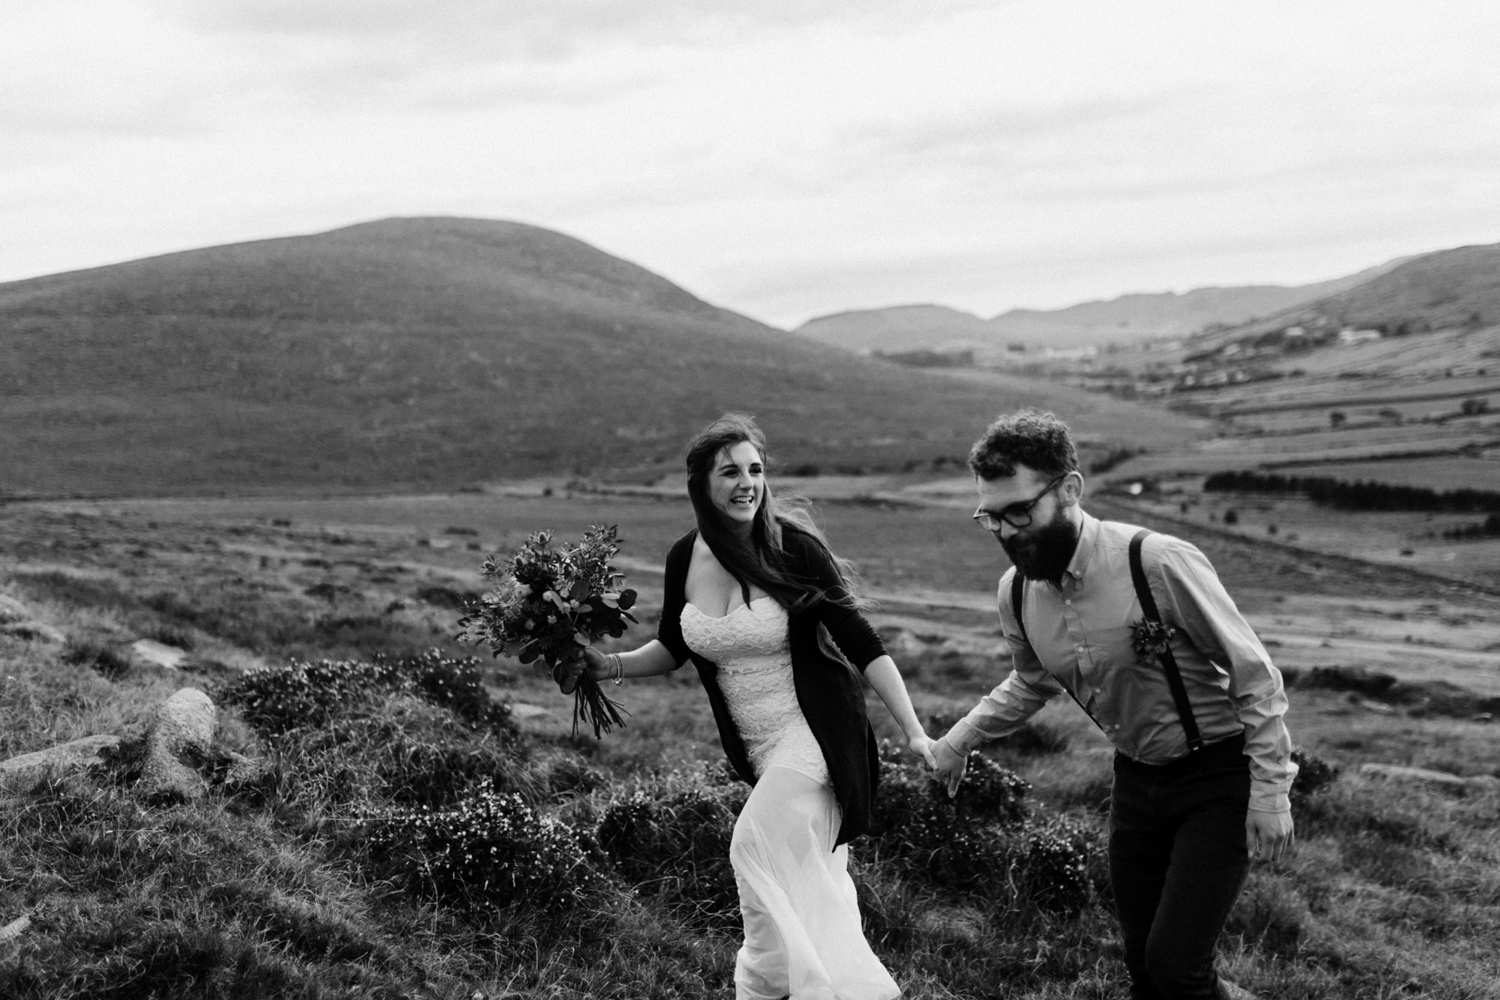 Mourne-mountain-ireland-elopement-5 John & Gráinne // Mourne Mountain Elopement Ireland